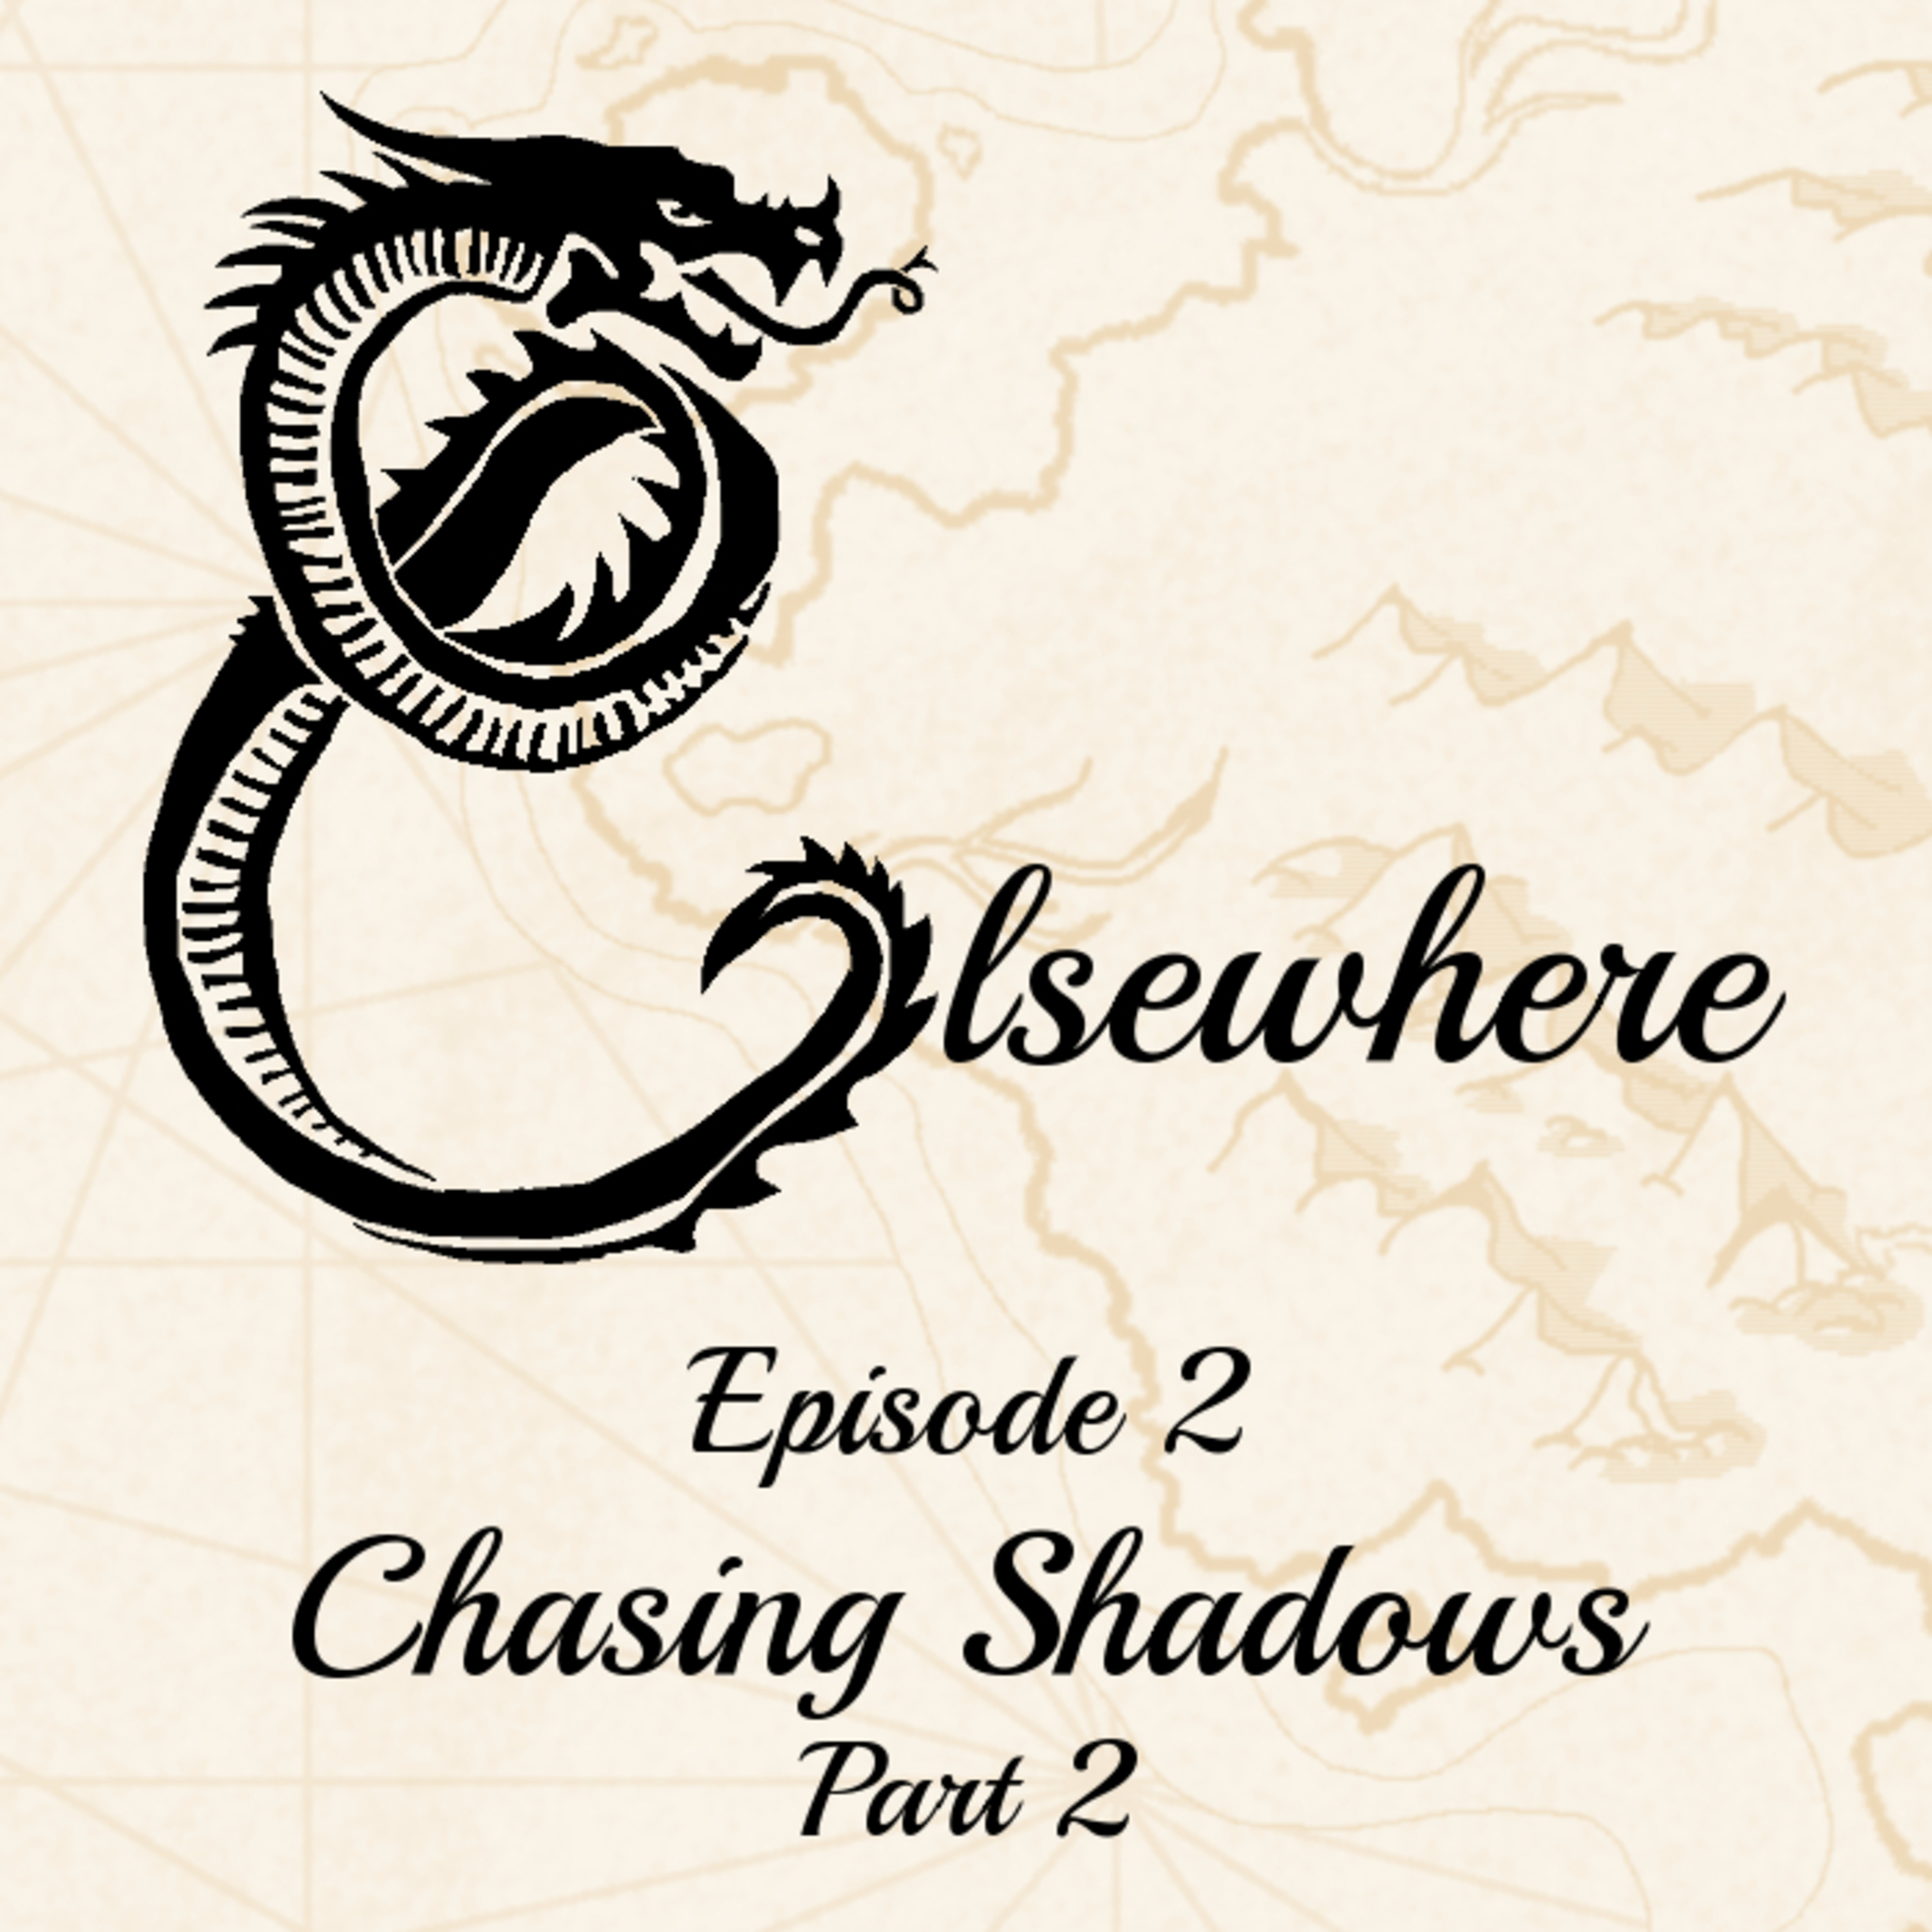 Elsewhere Episode 2 Part 2 Chasing Shadows